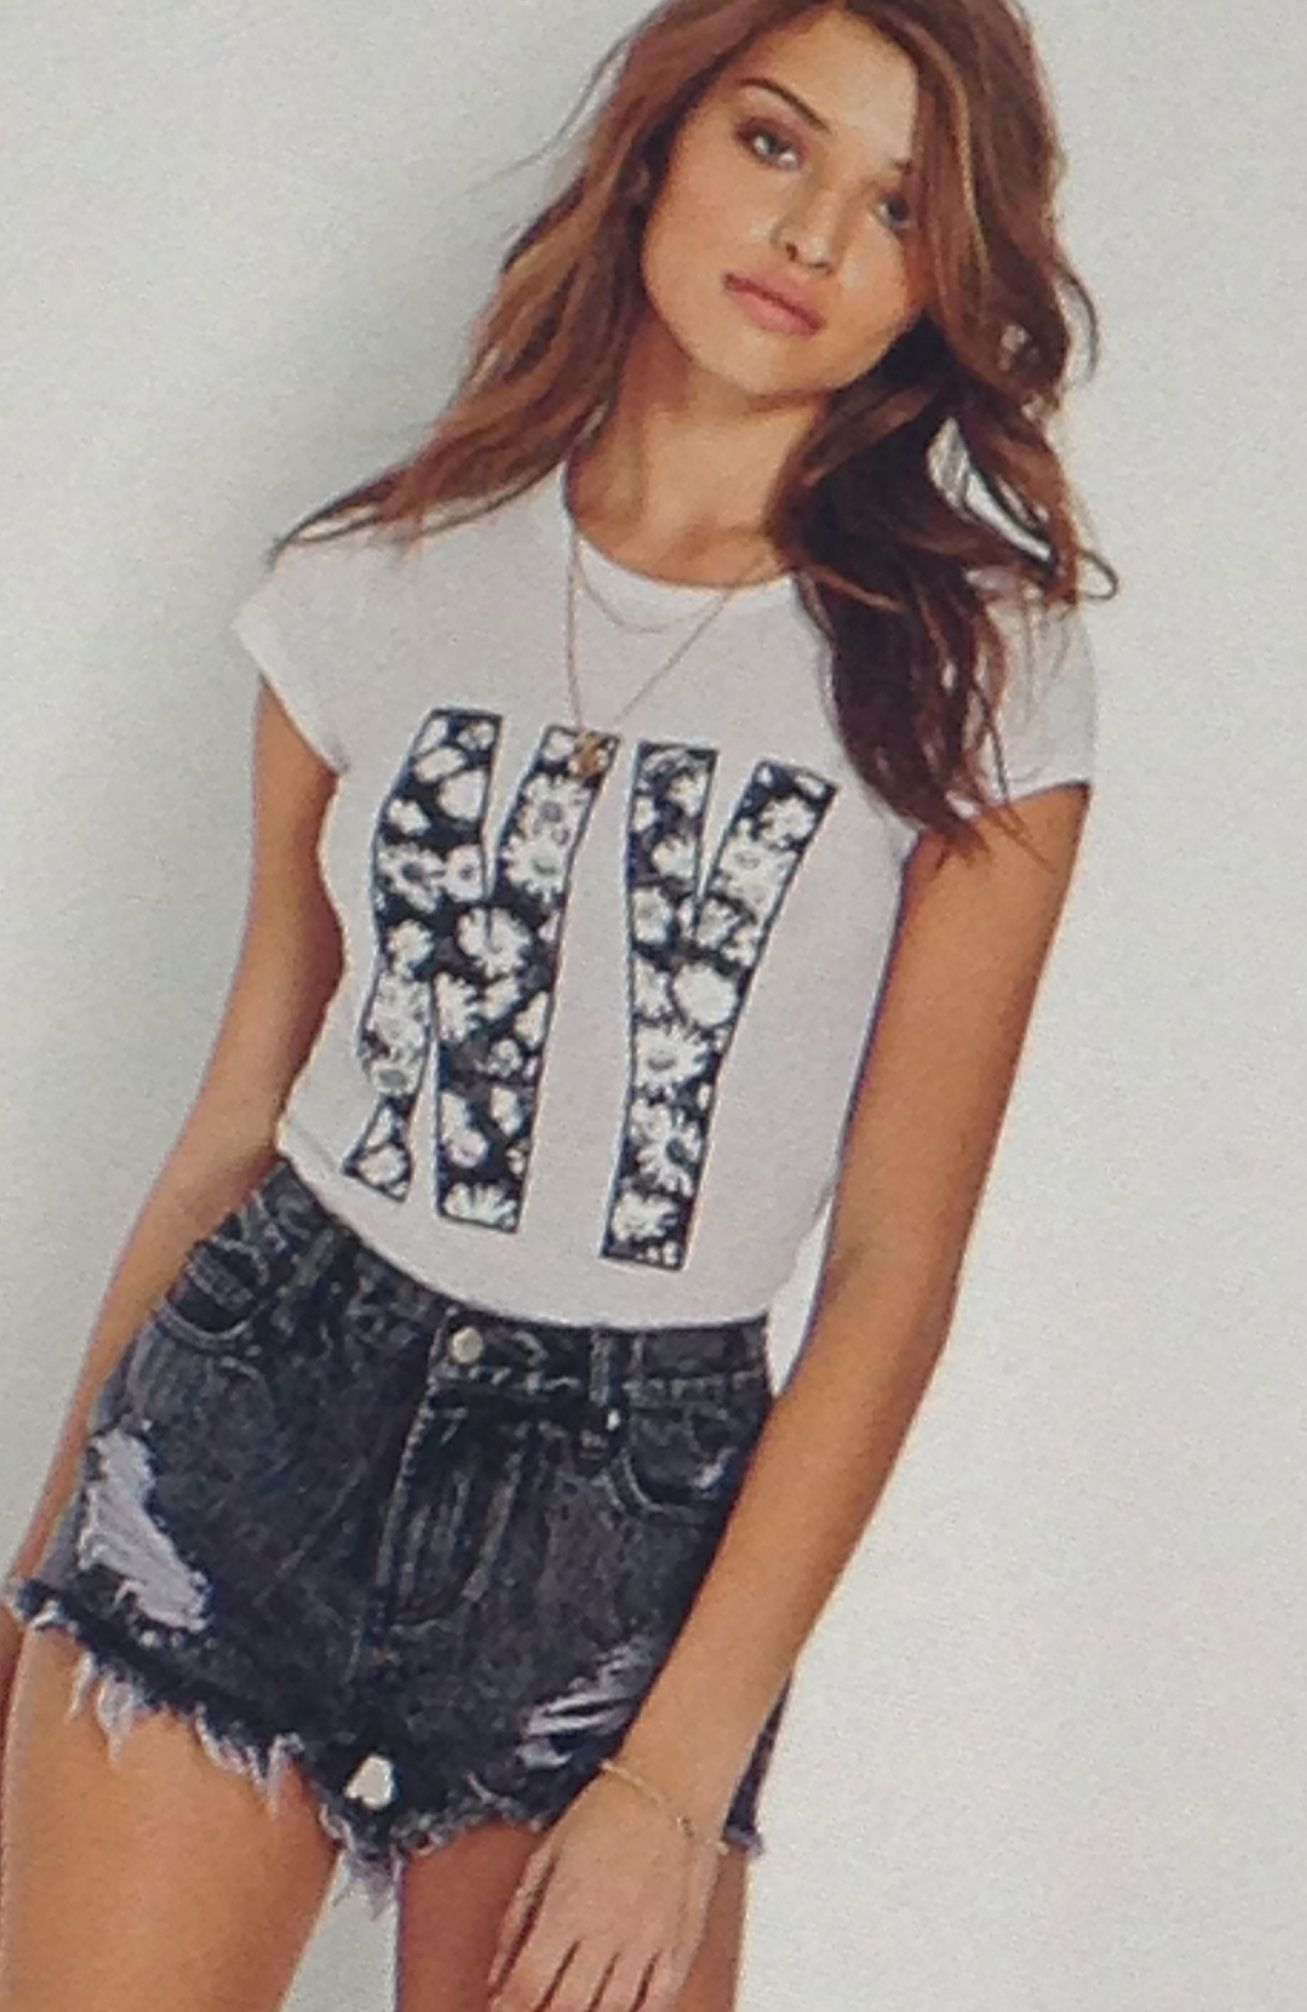 cute forever 21 outfit ! | Forever 21 outfits, Fashion ...